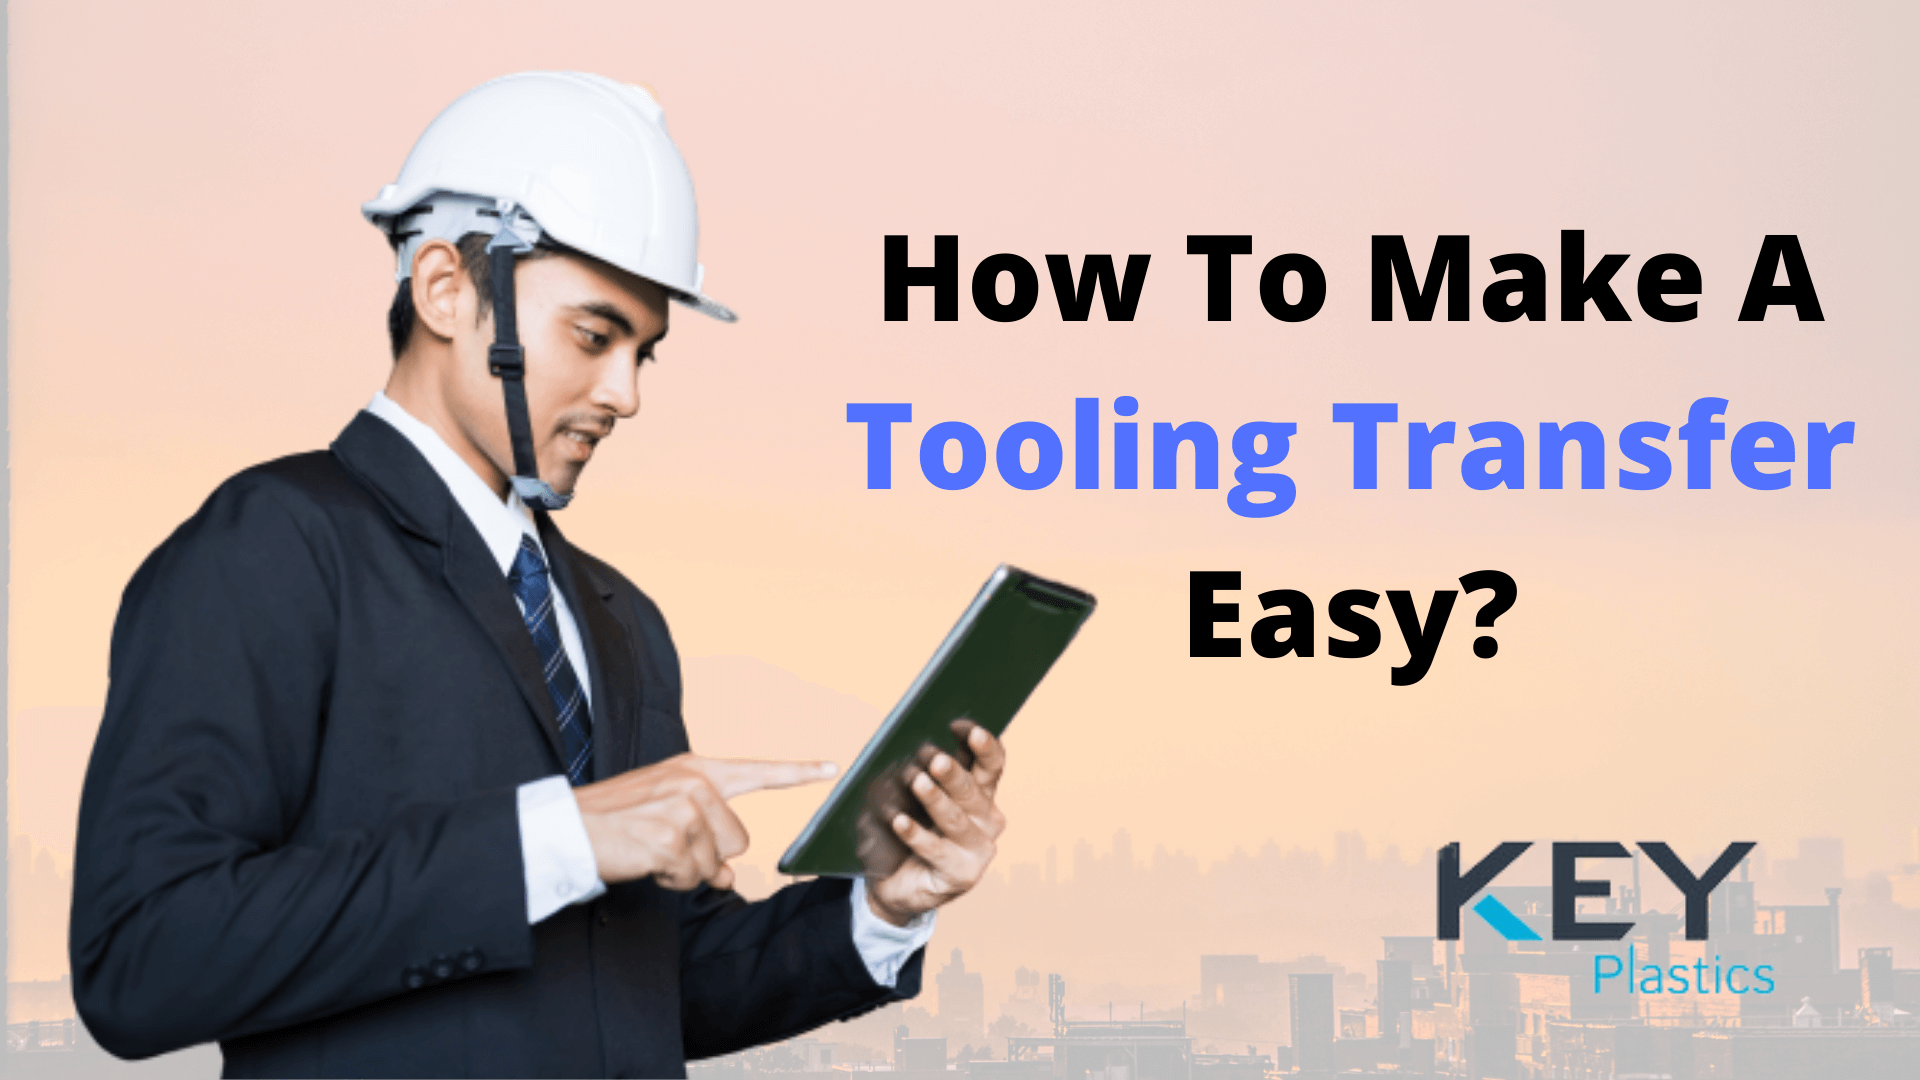 How to Make A Tooling Transfer Easy